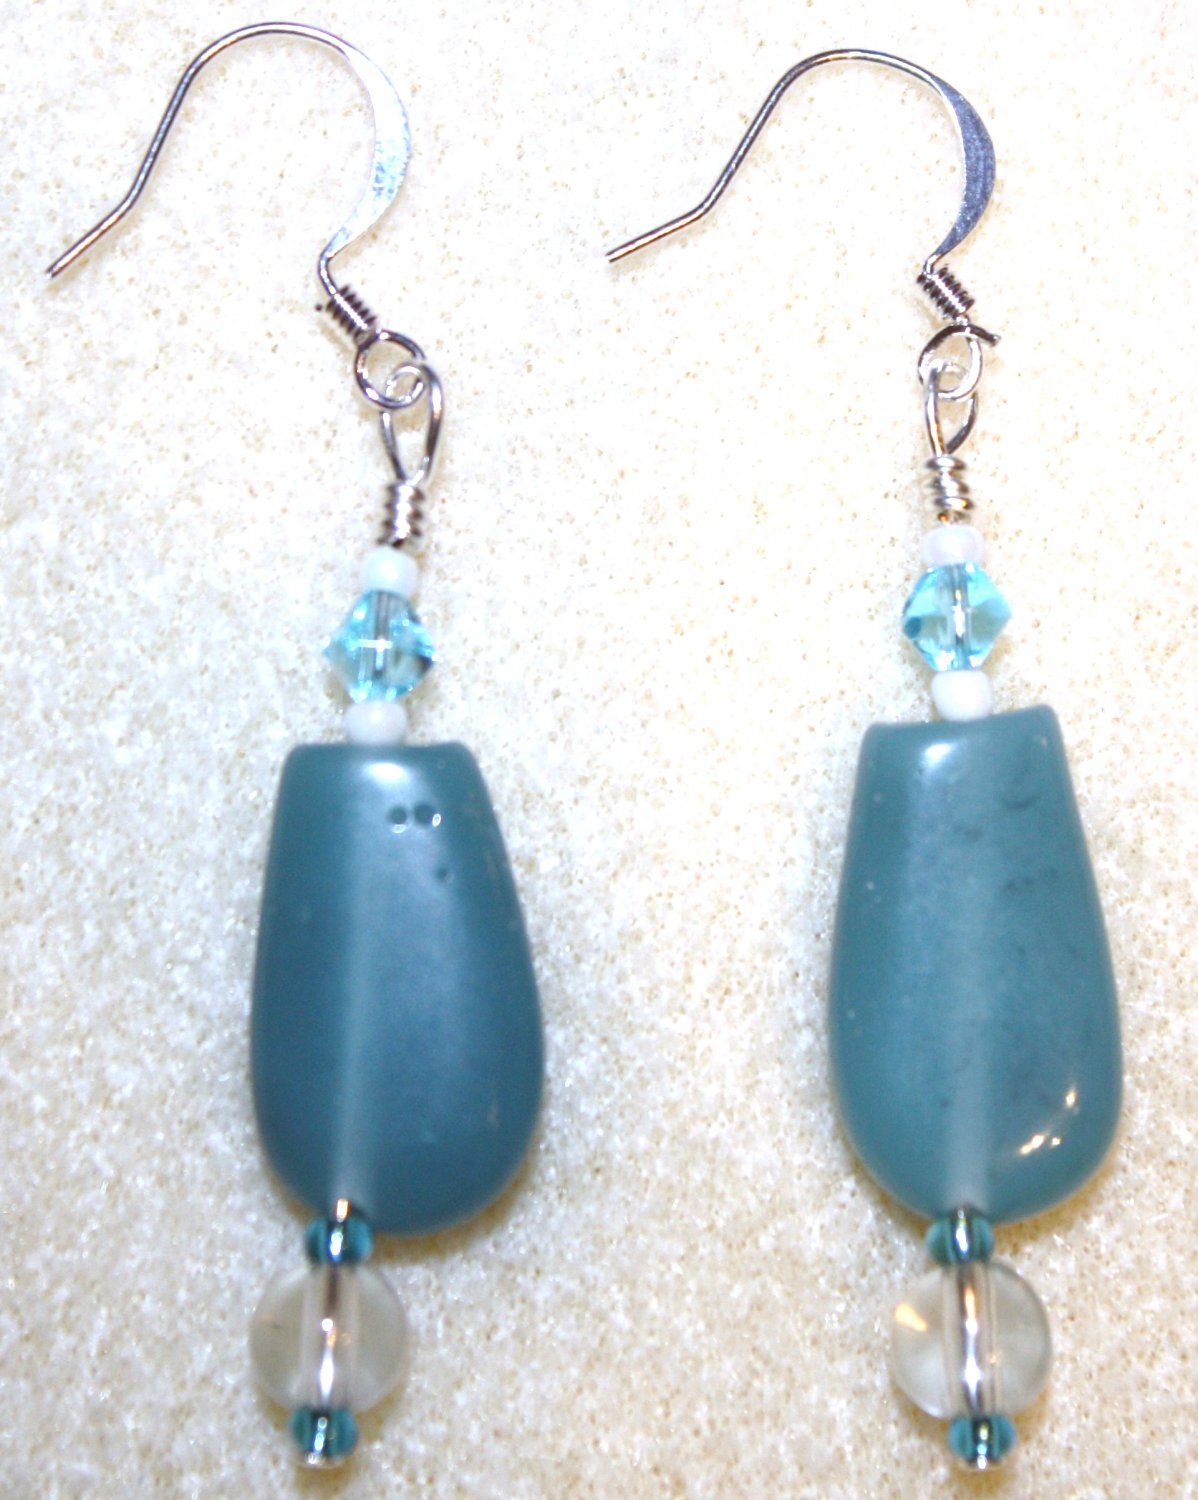 Aqua Focal Earrings - Item #E160